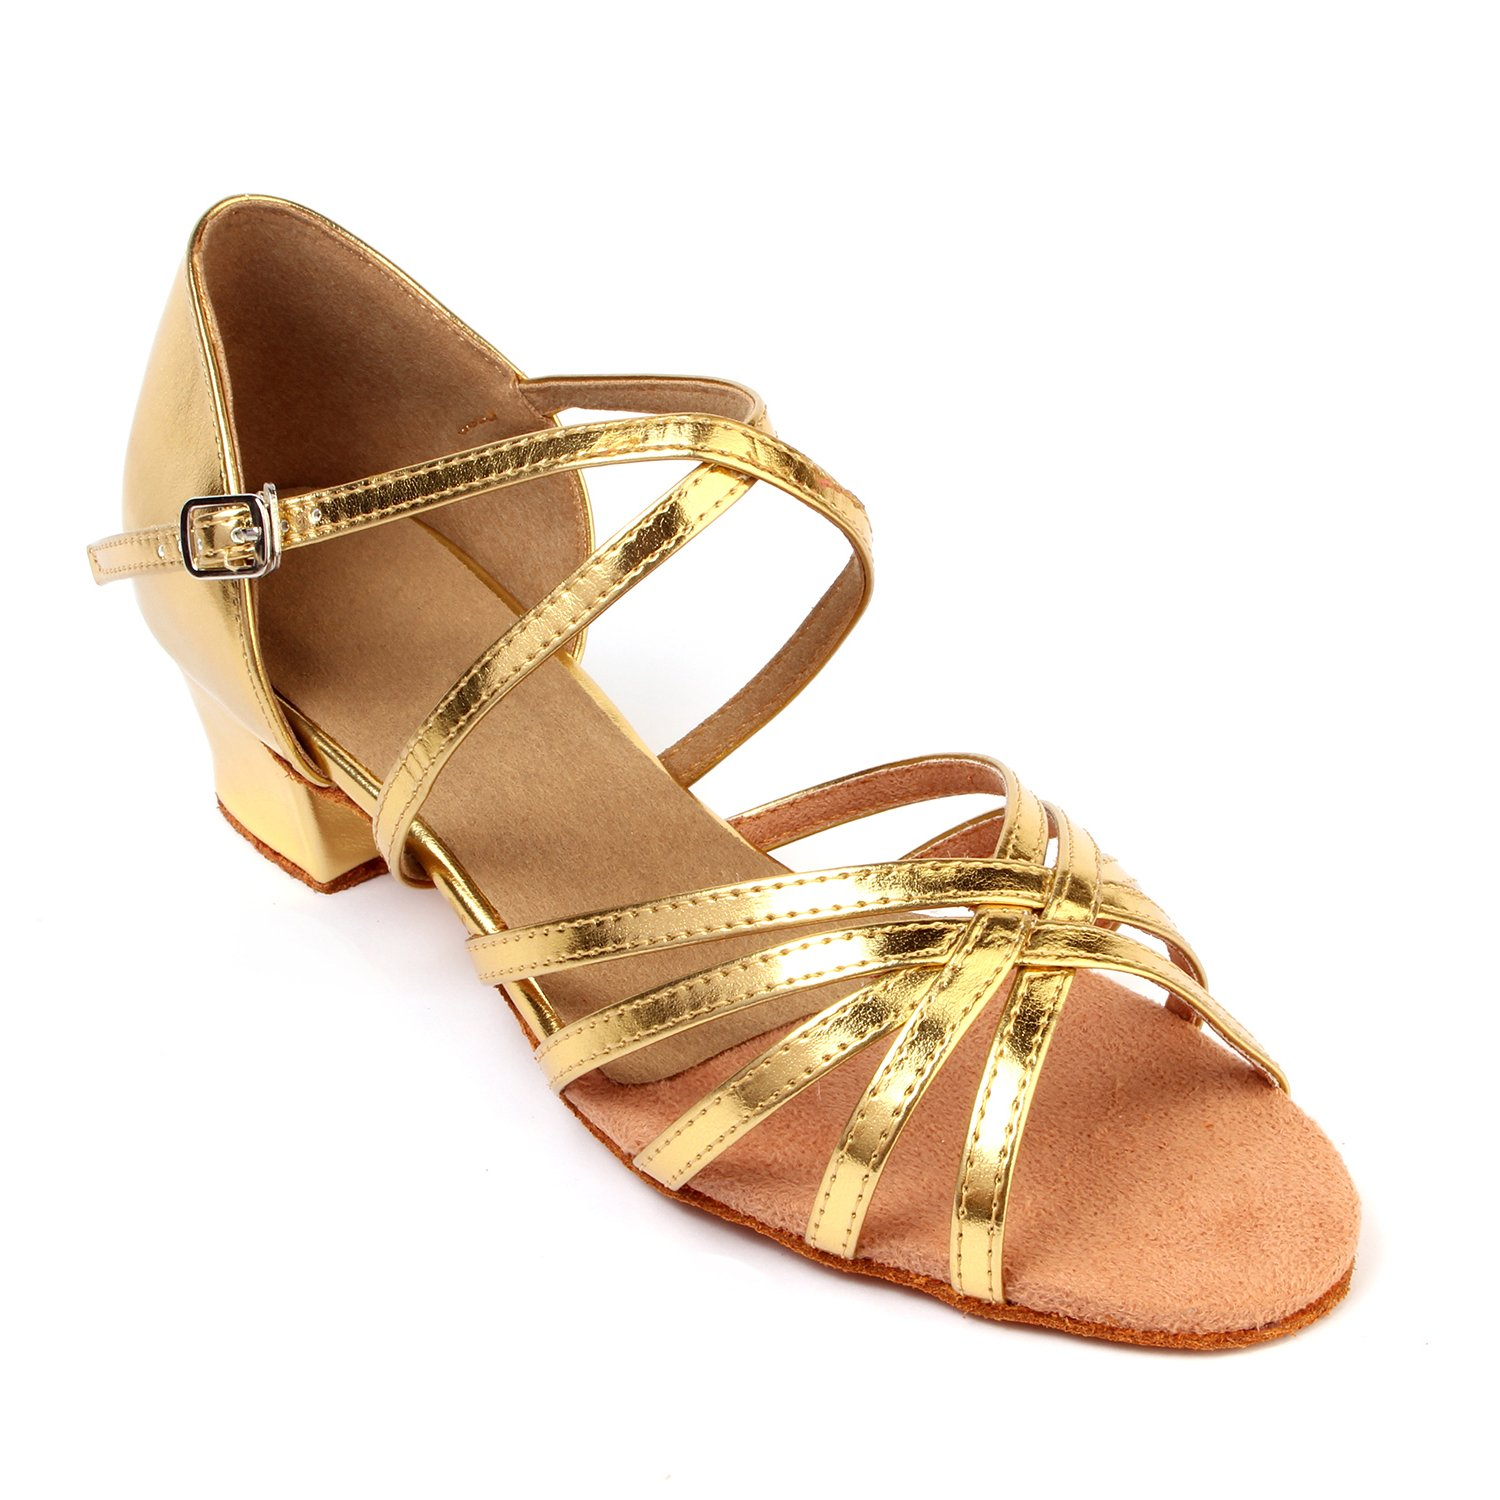 LOVELY BEAUTY for Lady's Ballroom Dance Shoes for BEAUTY Chacha Latin Salsa Rumba Practice B0777PPVVF 6.5 B(M) US|Gold f7f8a3